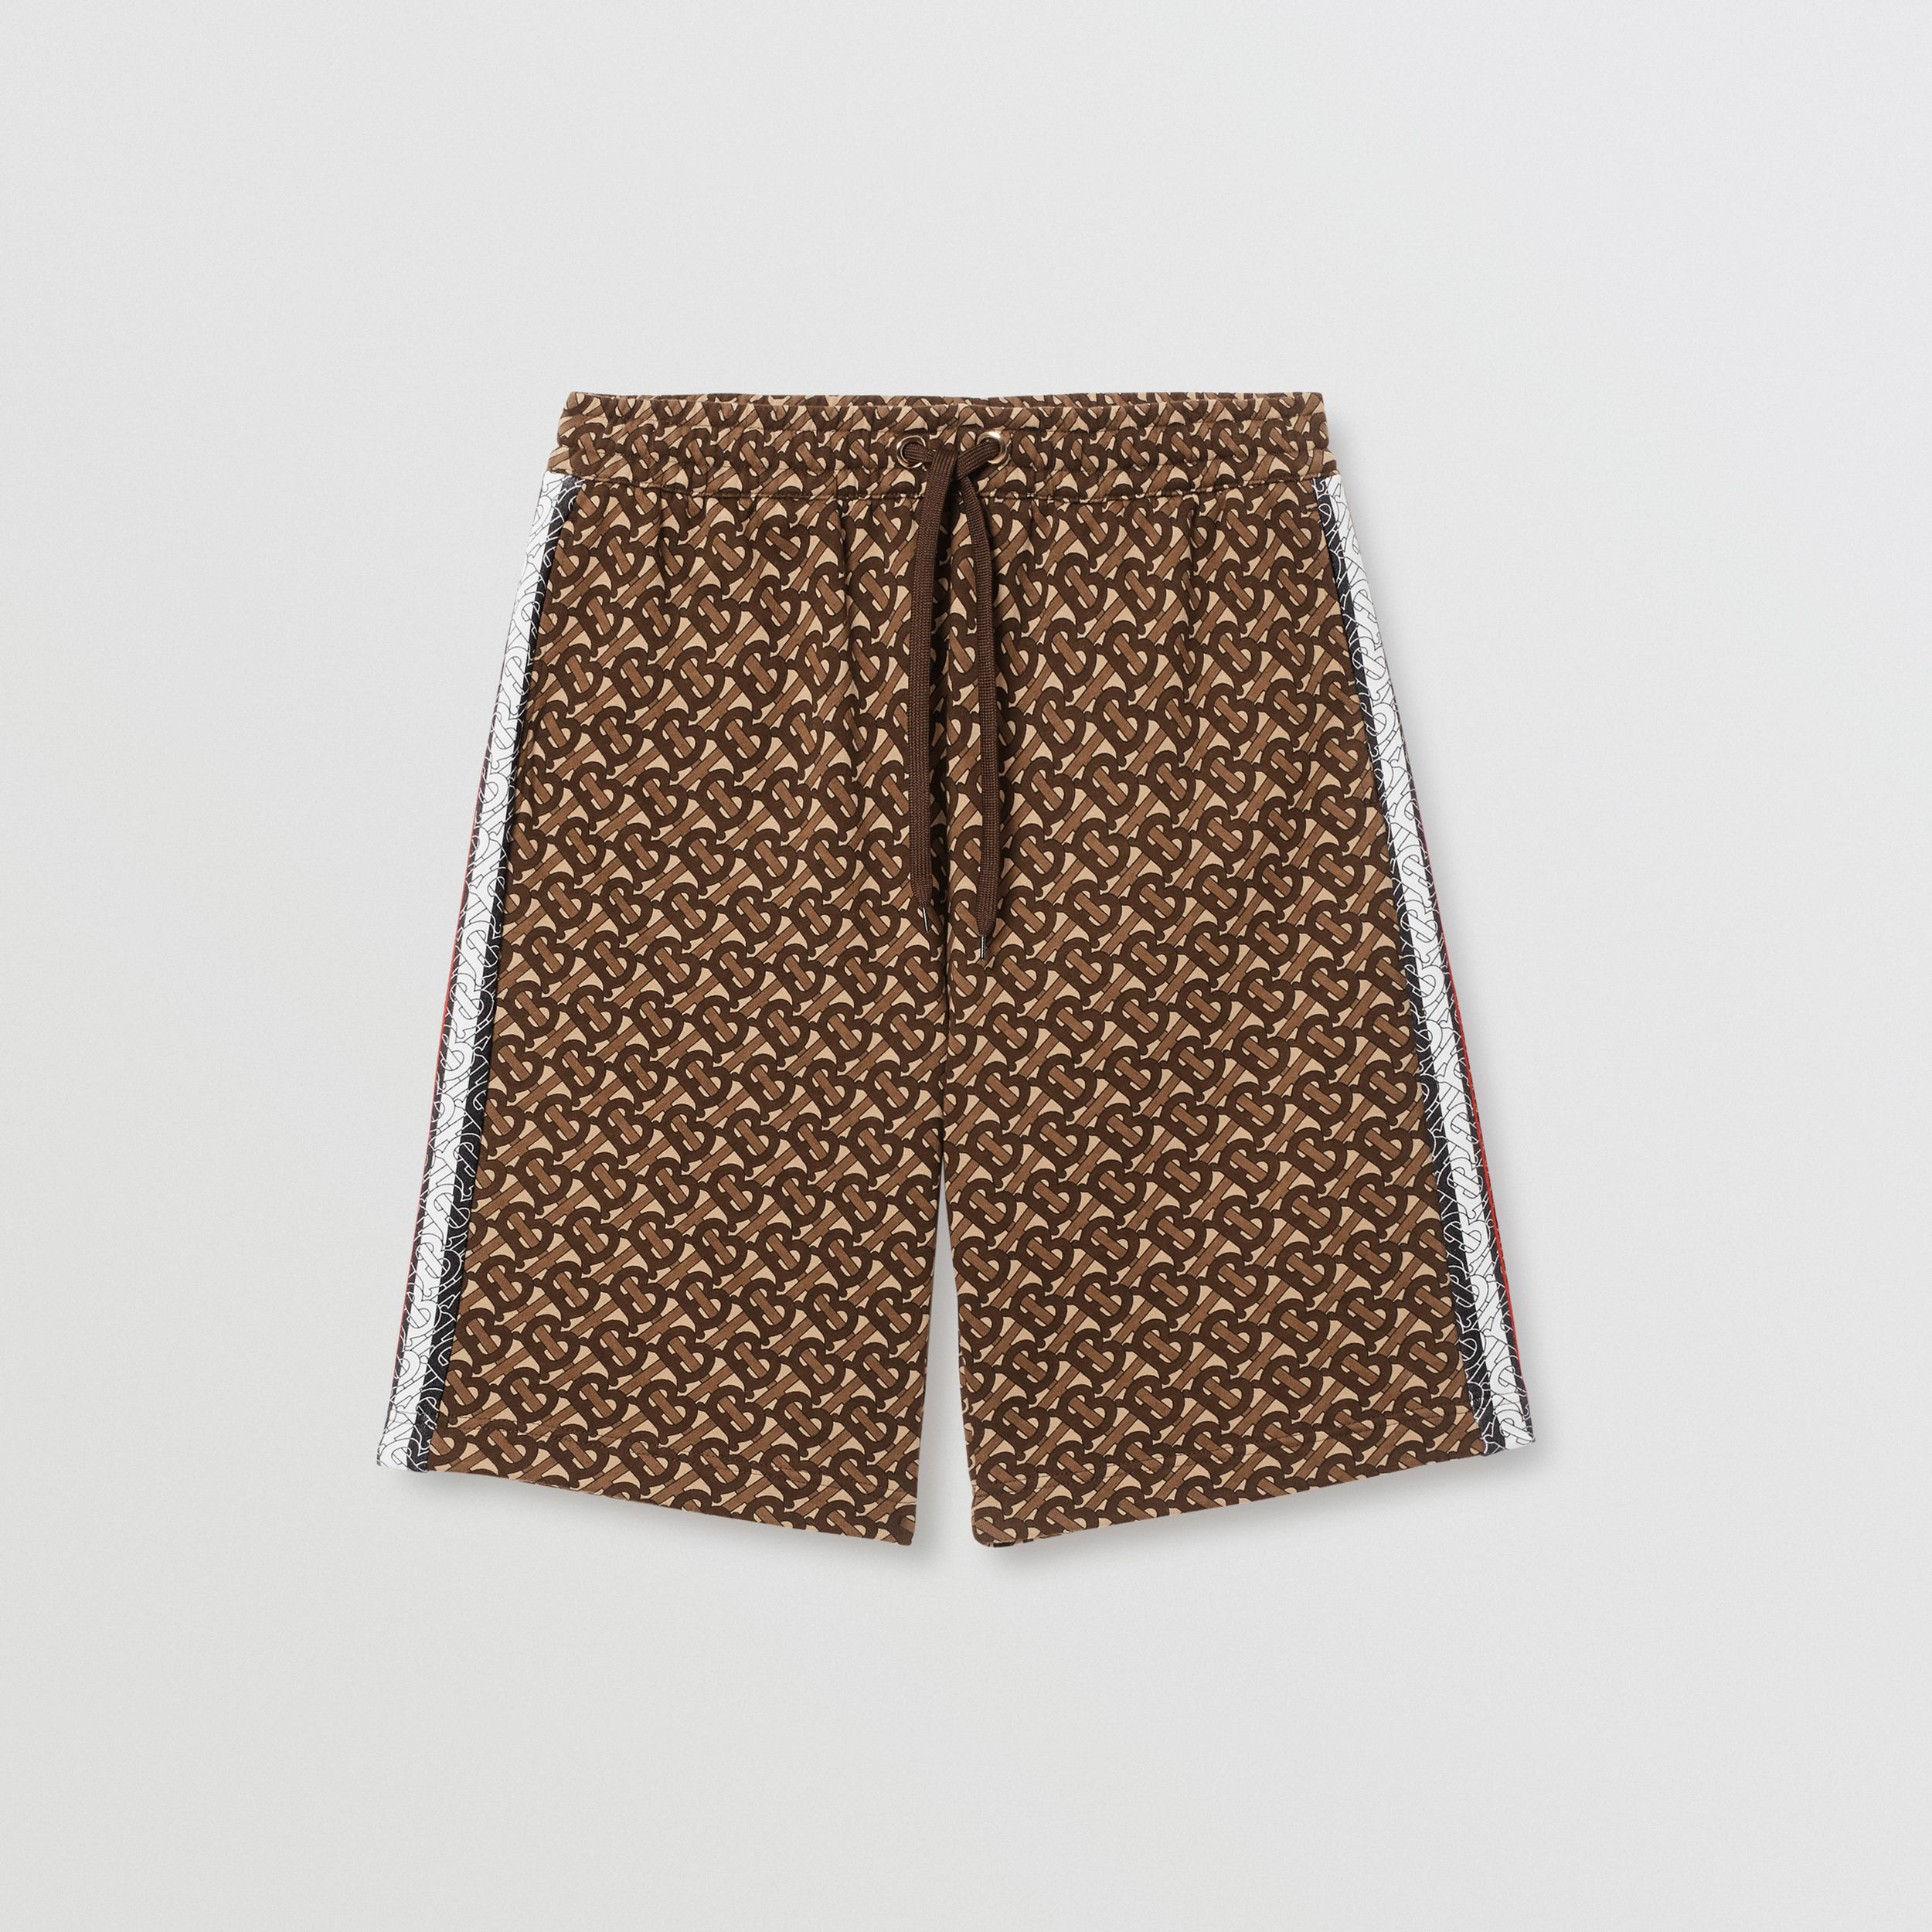 Monogram Stripe Print Cotton Drawcord Shorts in Bridle Brown - Men | Burberry - 4